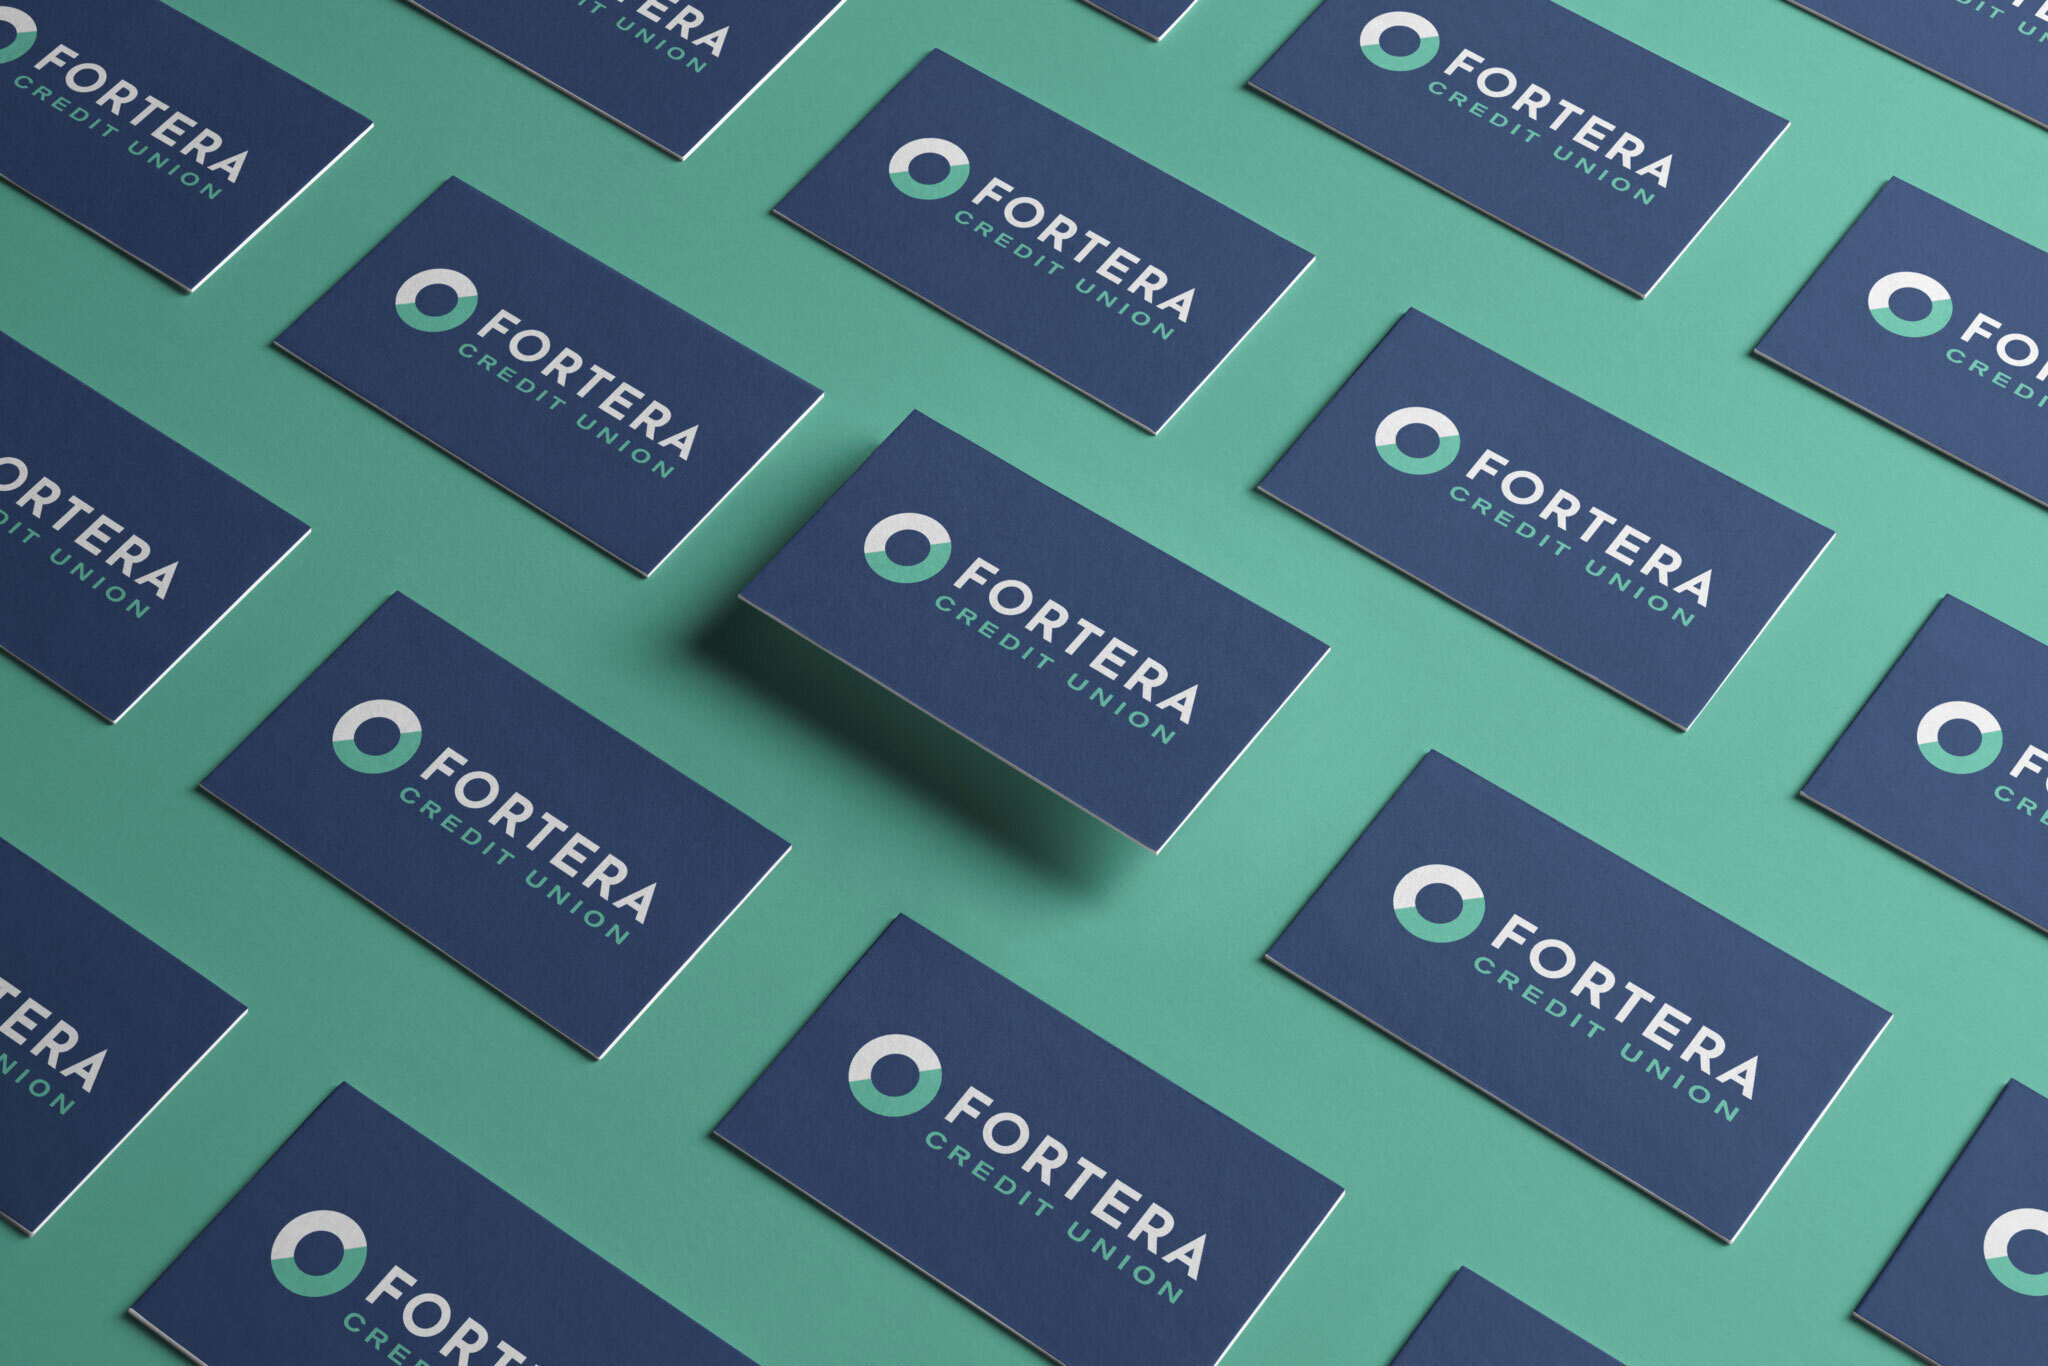 Fortera business cards lined up